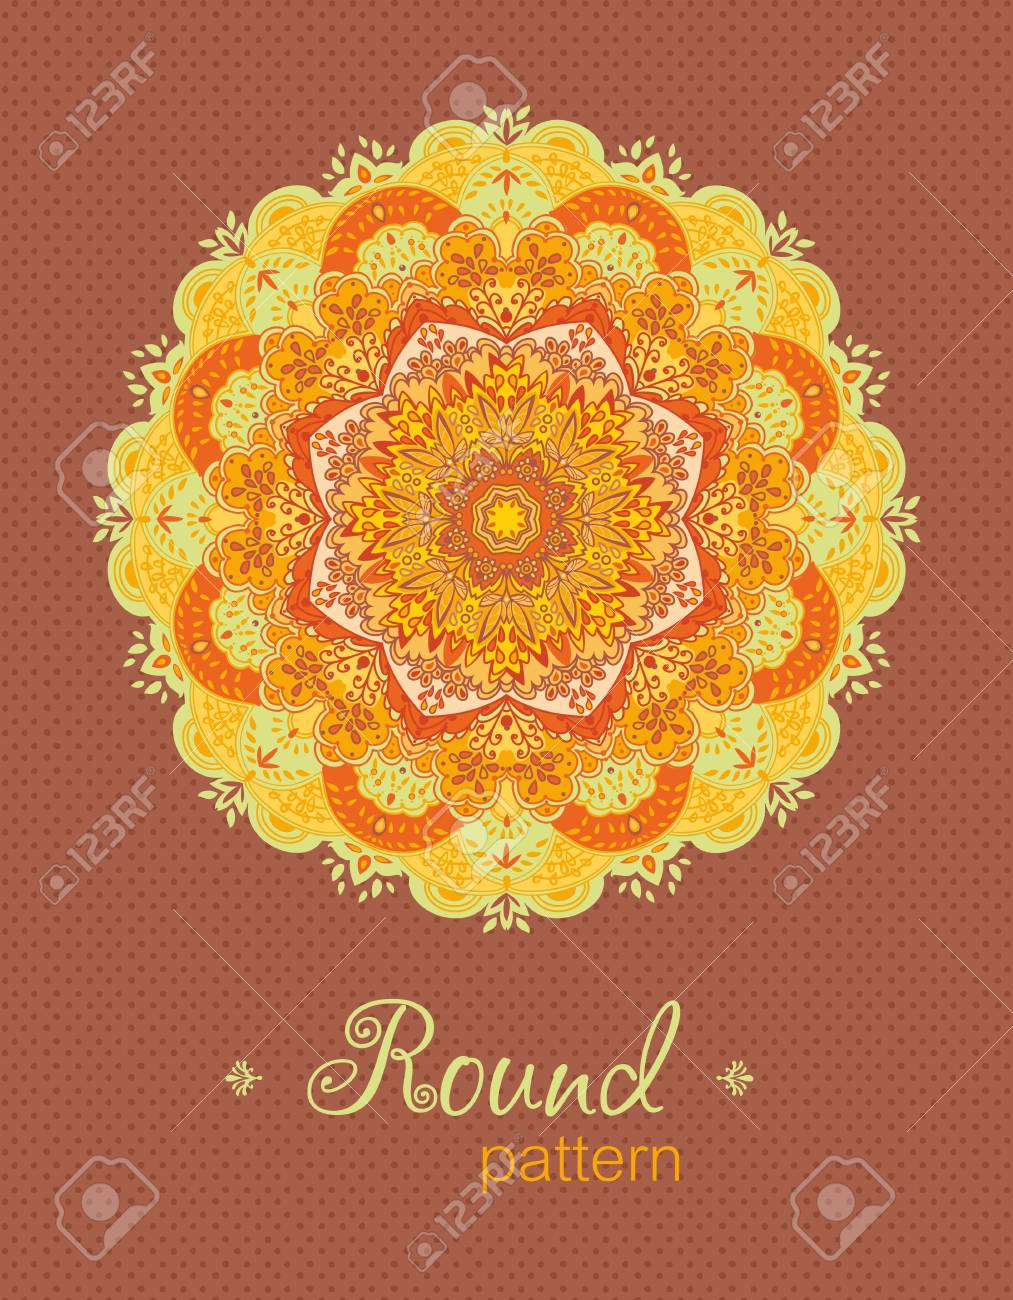 Ornamental roundfloral  lace pattern   Space for text Stock Vector - 13619942